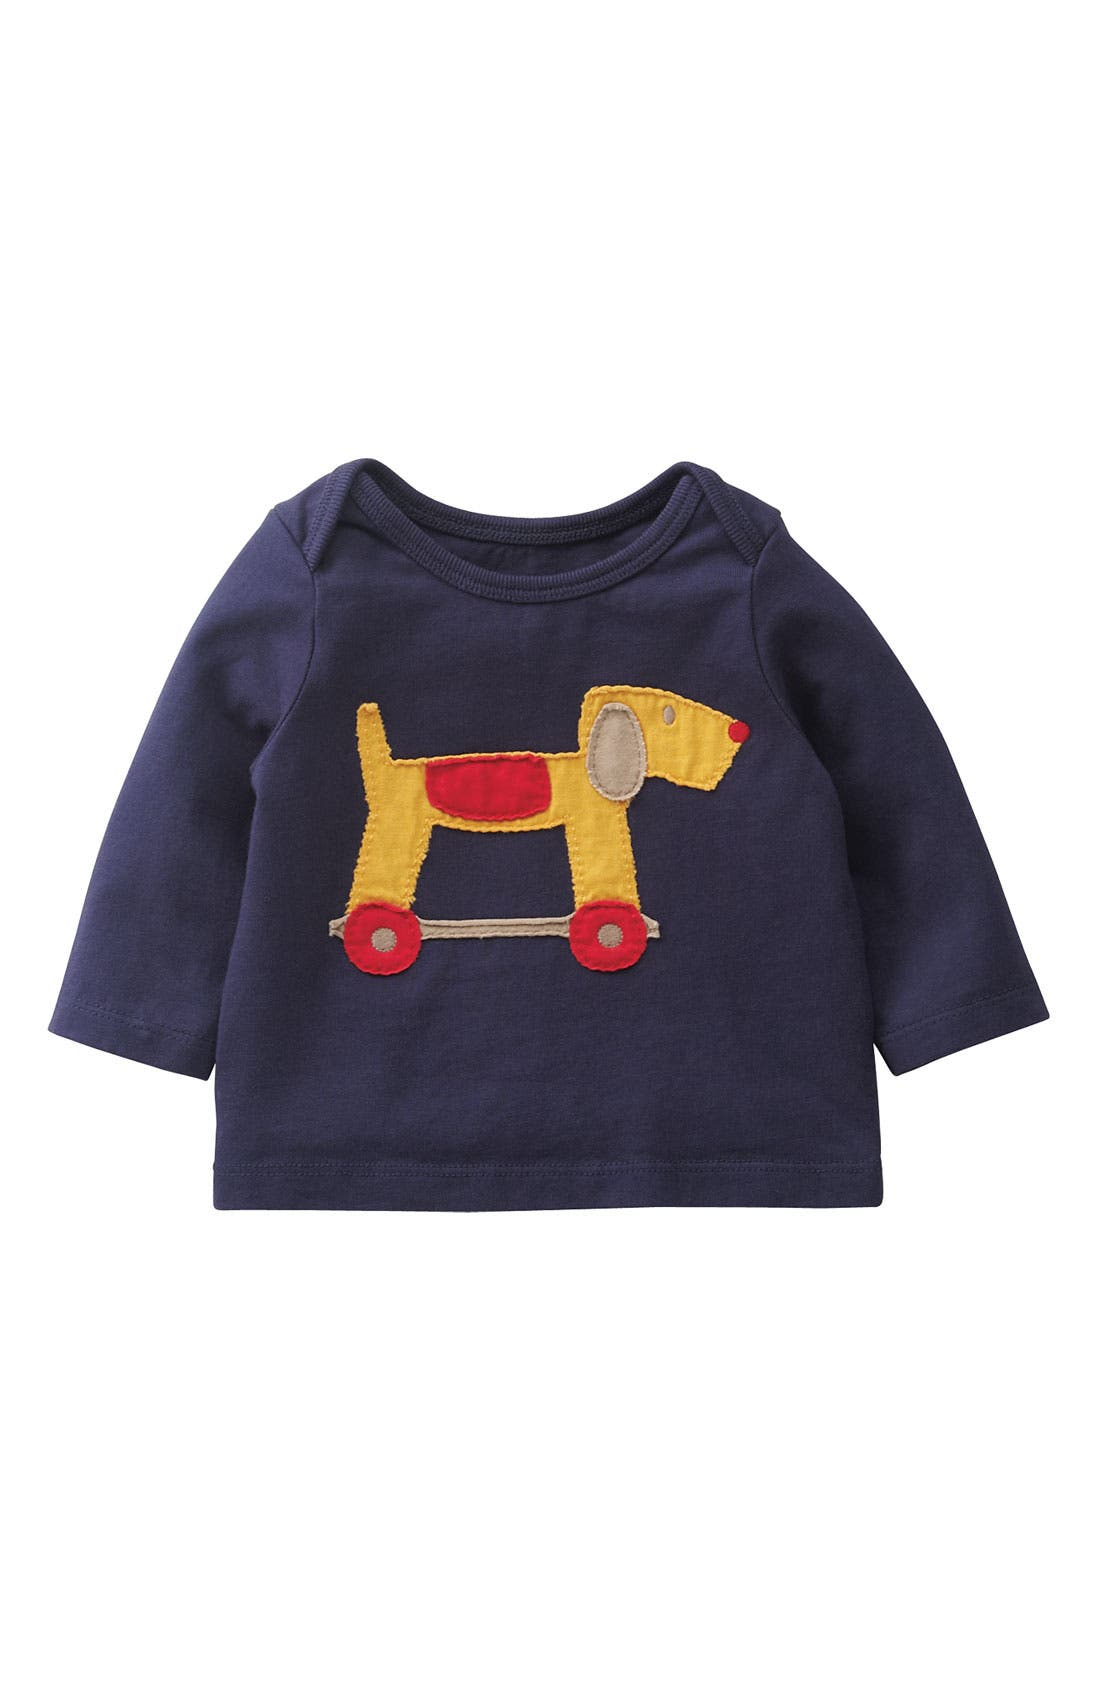 Main Image - Mini Boden Appliqué T-Shirt (Infant)